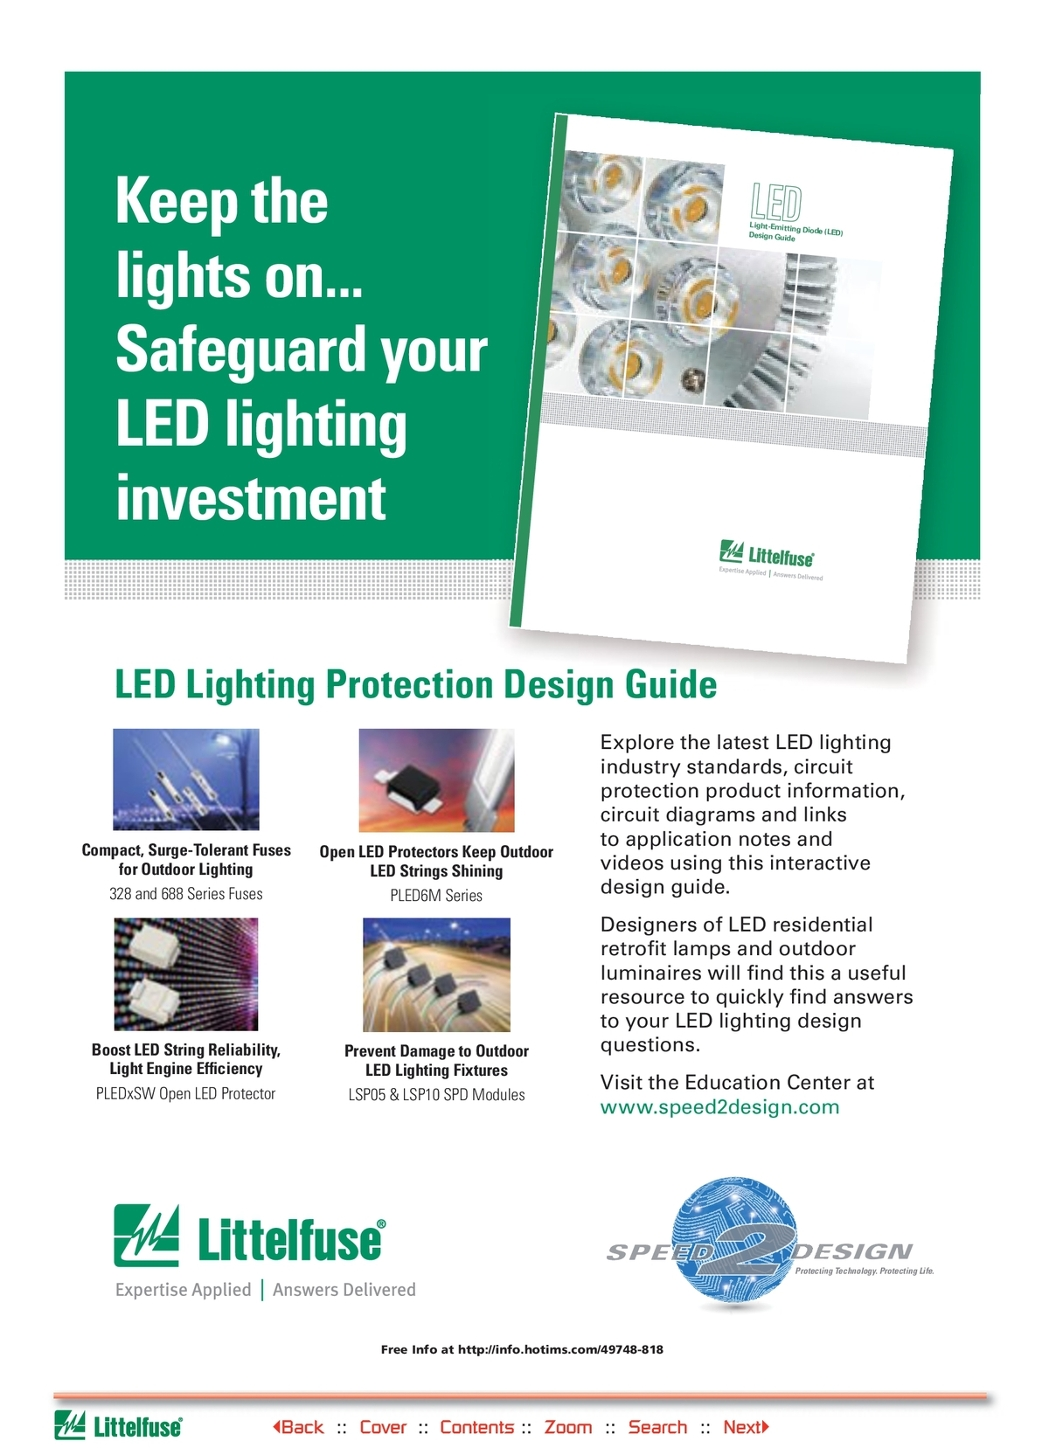 Lt0814 Zmags Outdoor Lighting Wiring Diagram Get Free Image About Page 1